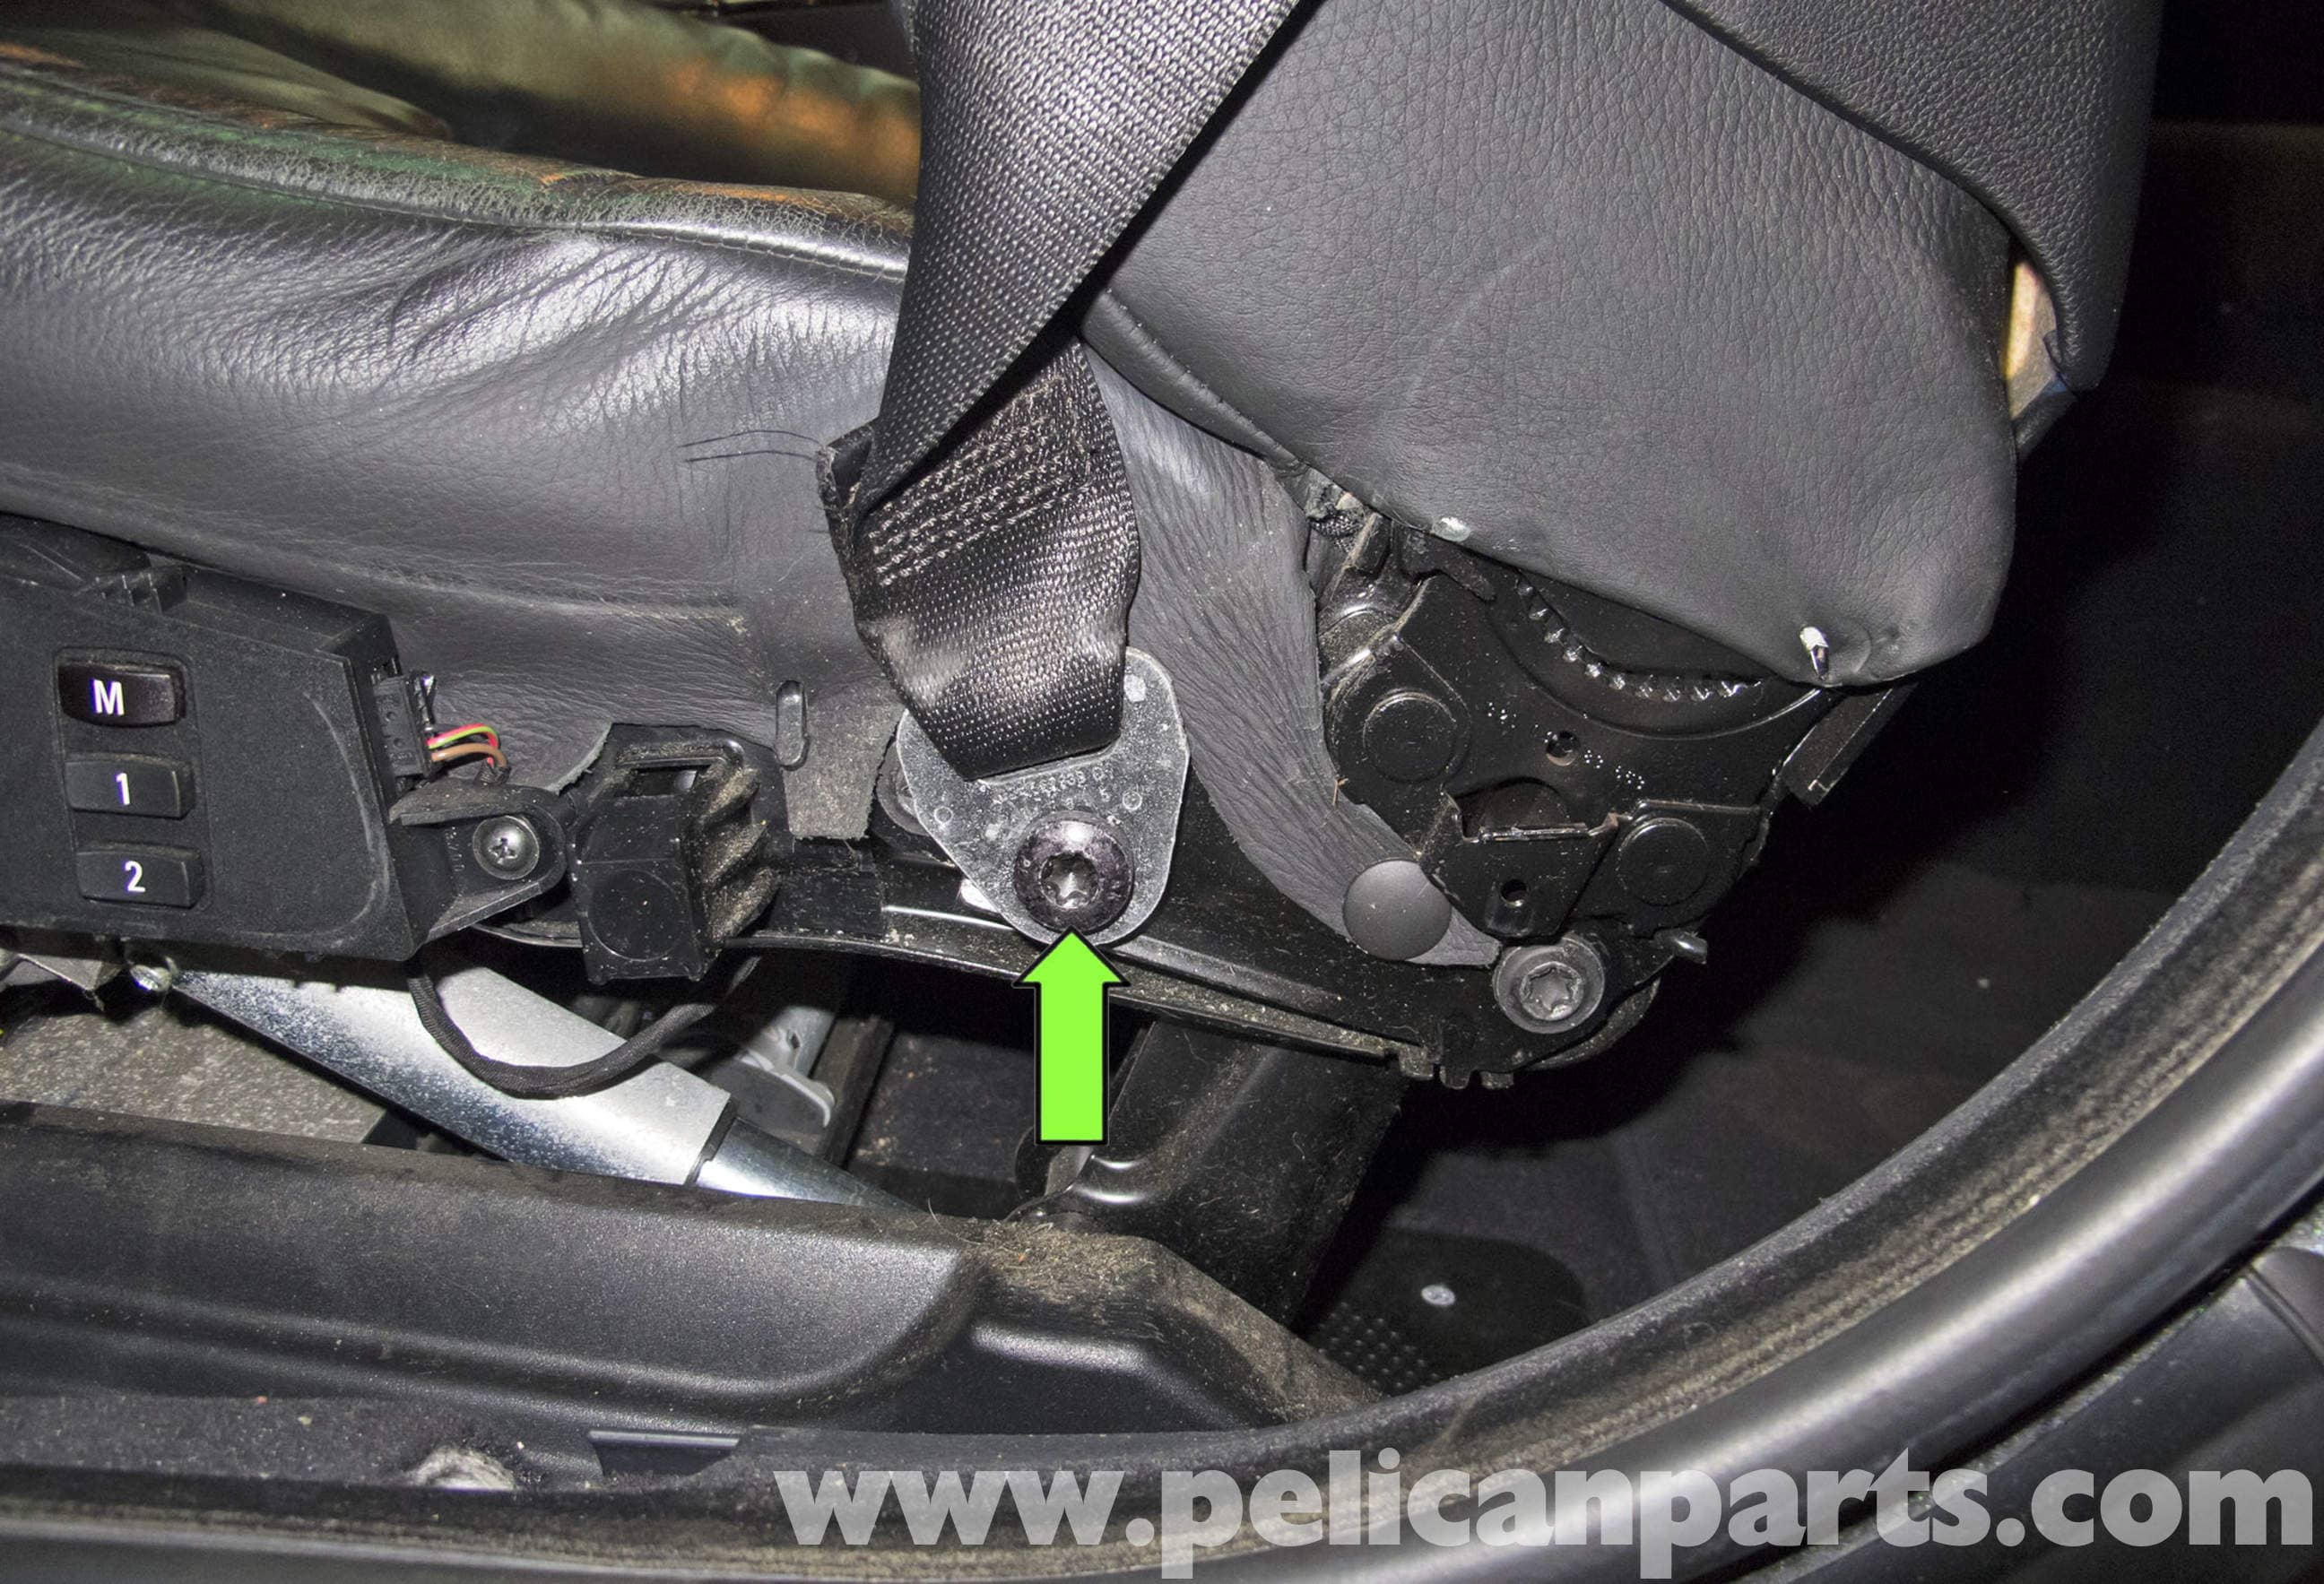 Bmw 5 Series Seats Removal E60 2004 2010 Pelican